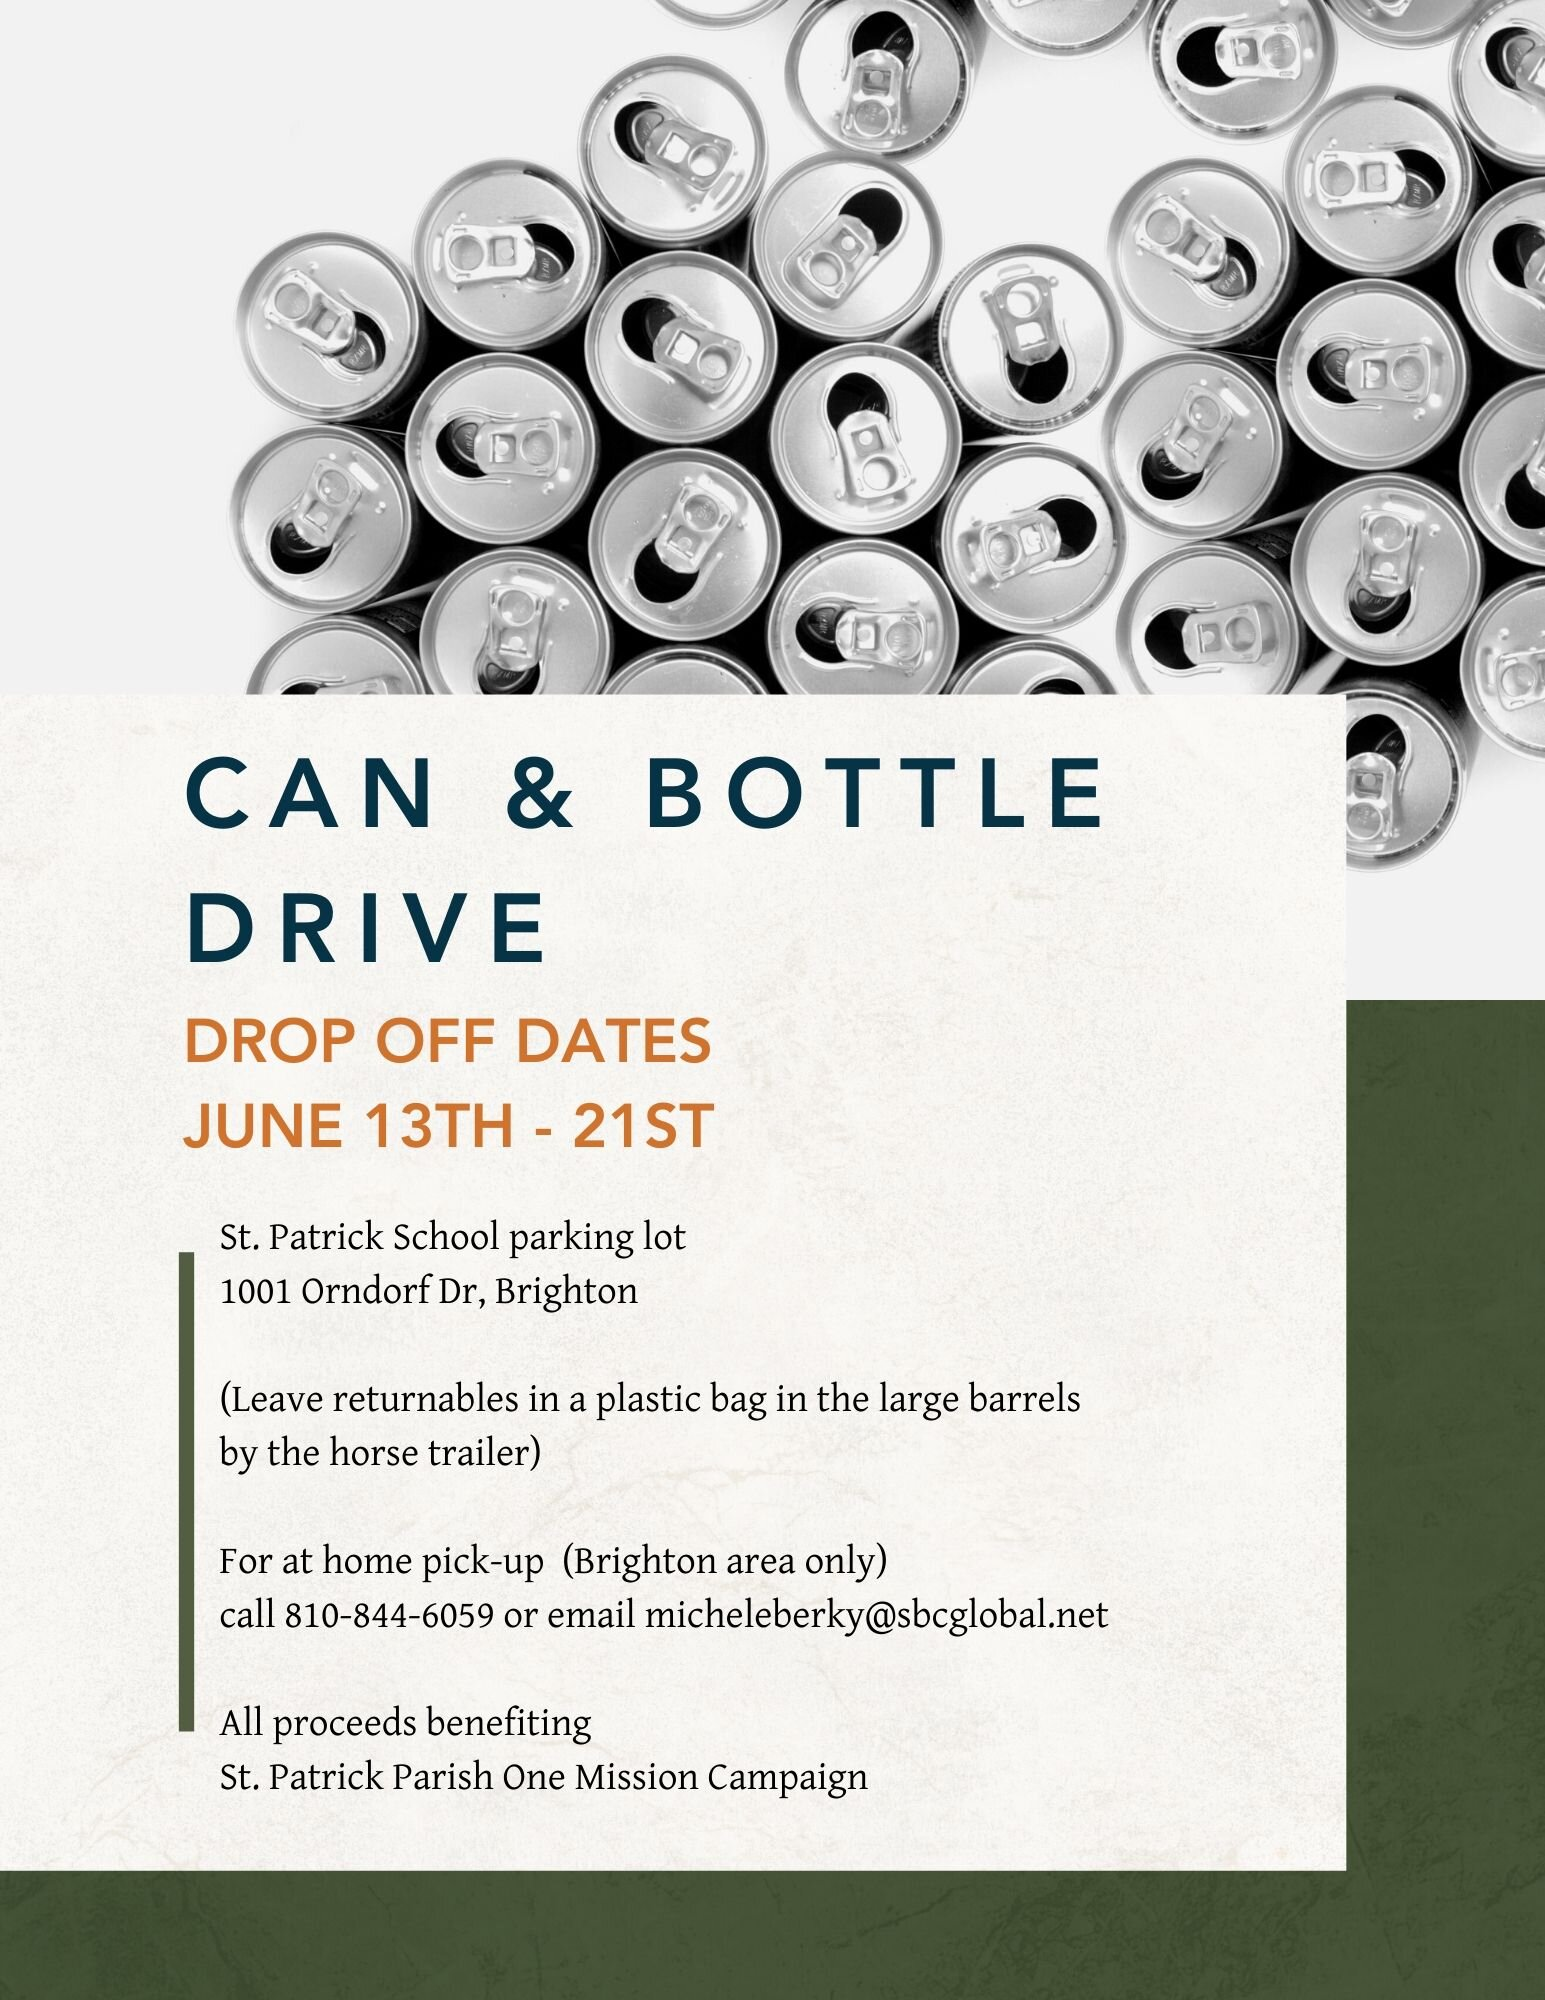 can and bottle drive flyer template, editable food drive flyer template word free, food drive flyer template publisher, food drive flyer template microsoft, free food drive flyer template word